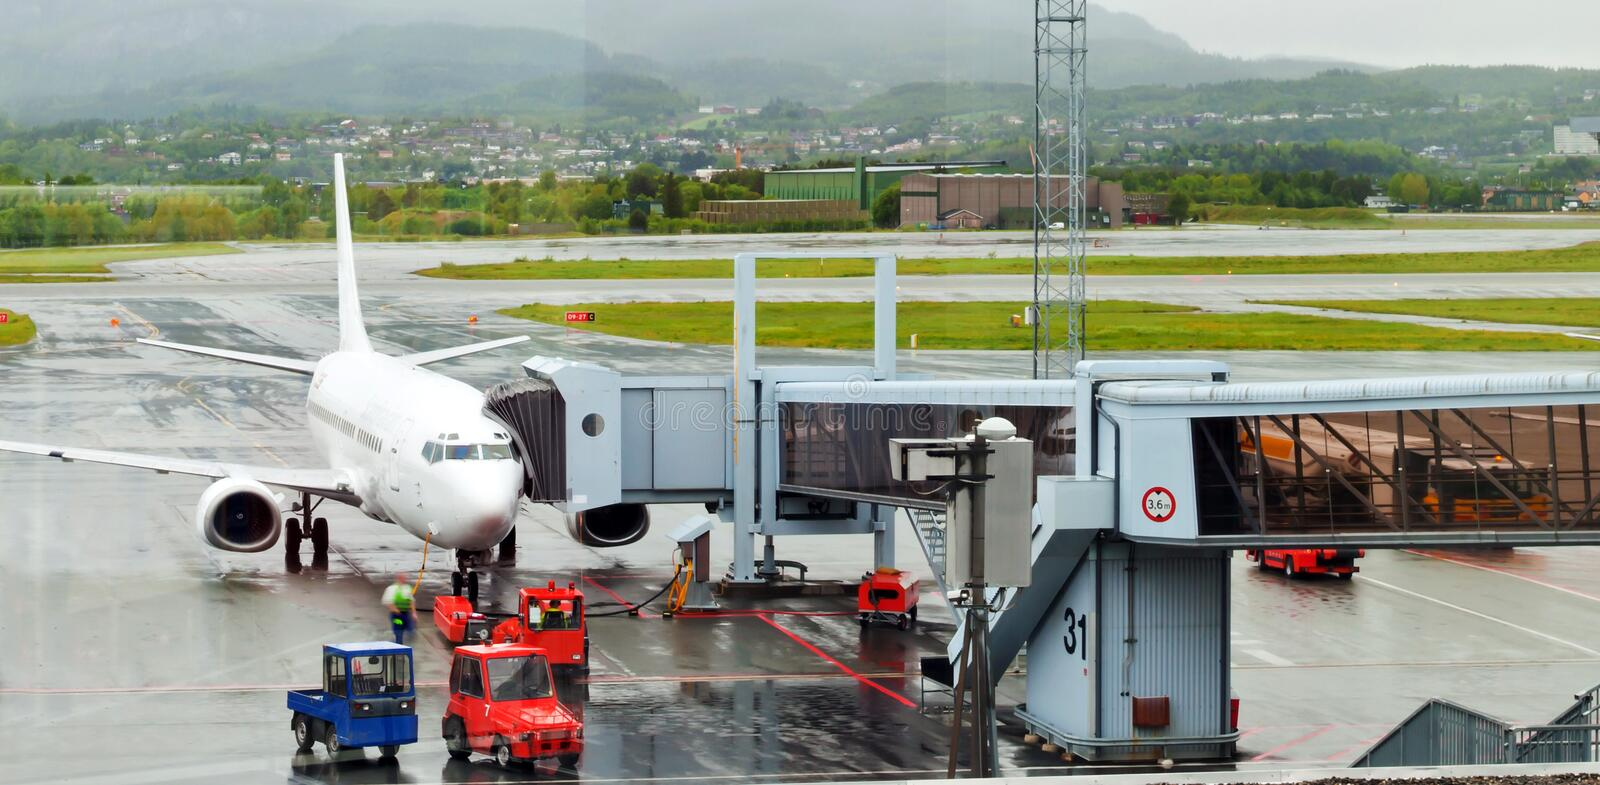 Download Airplane at airport stock image. Image of business, rain - 19813093